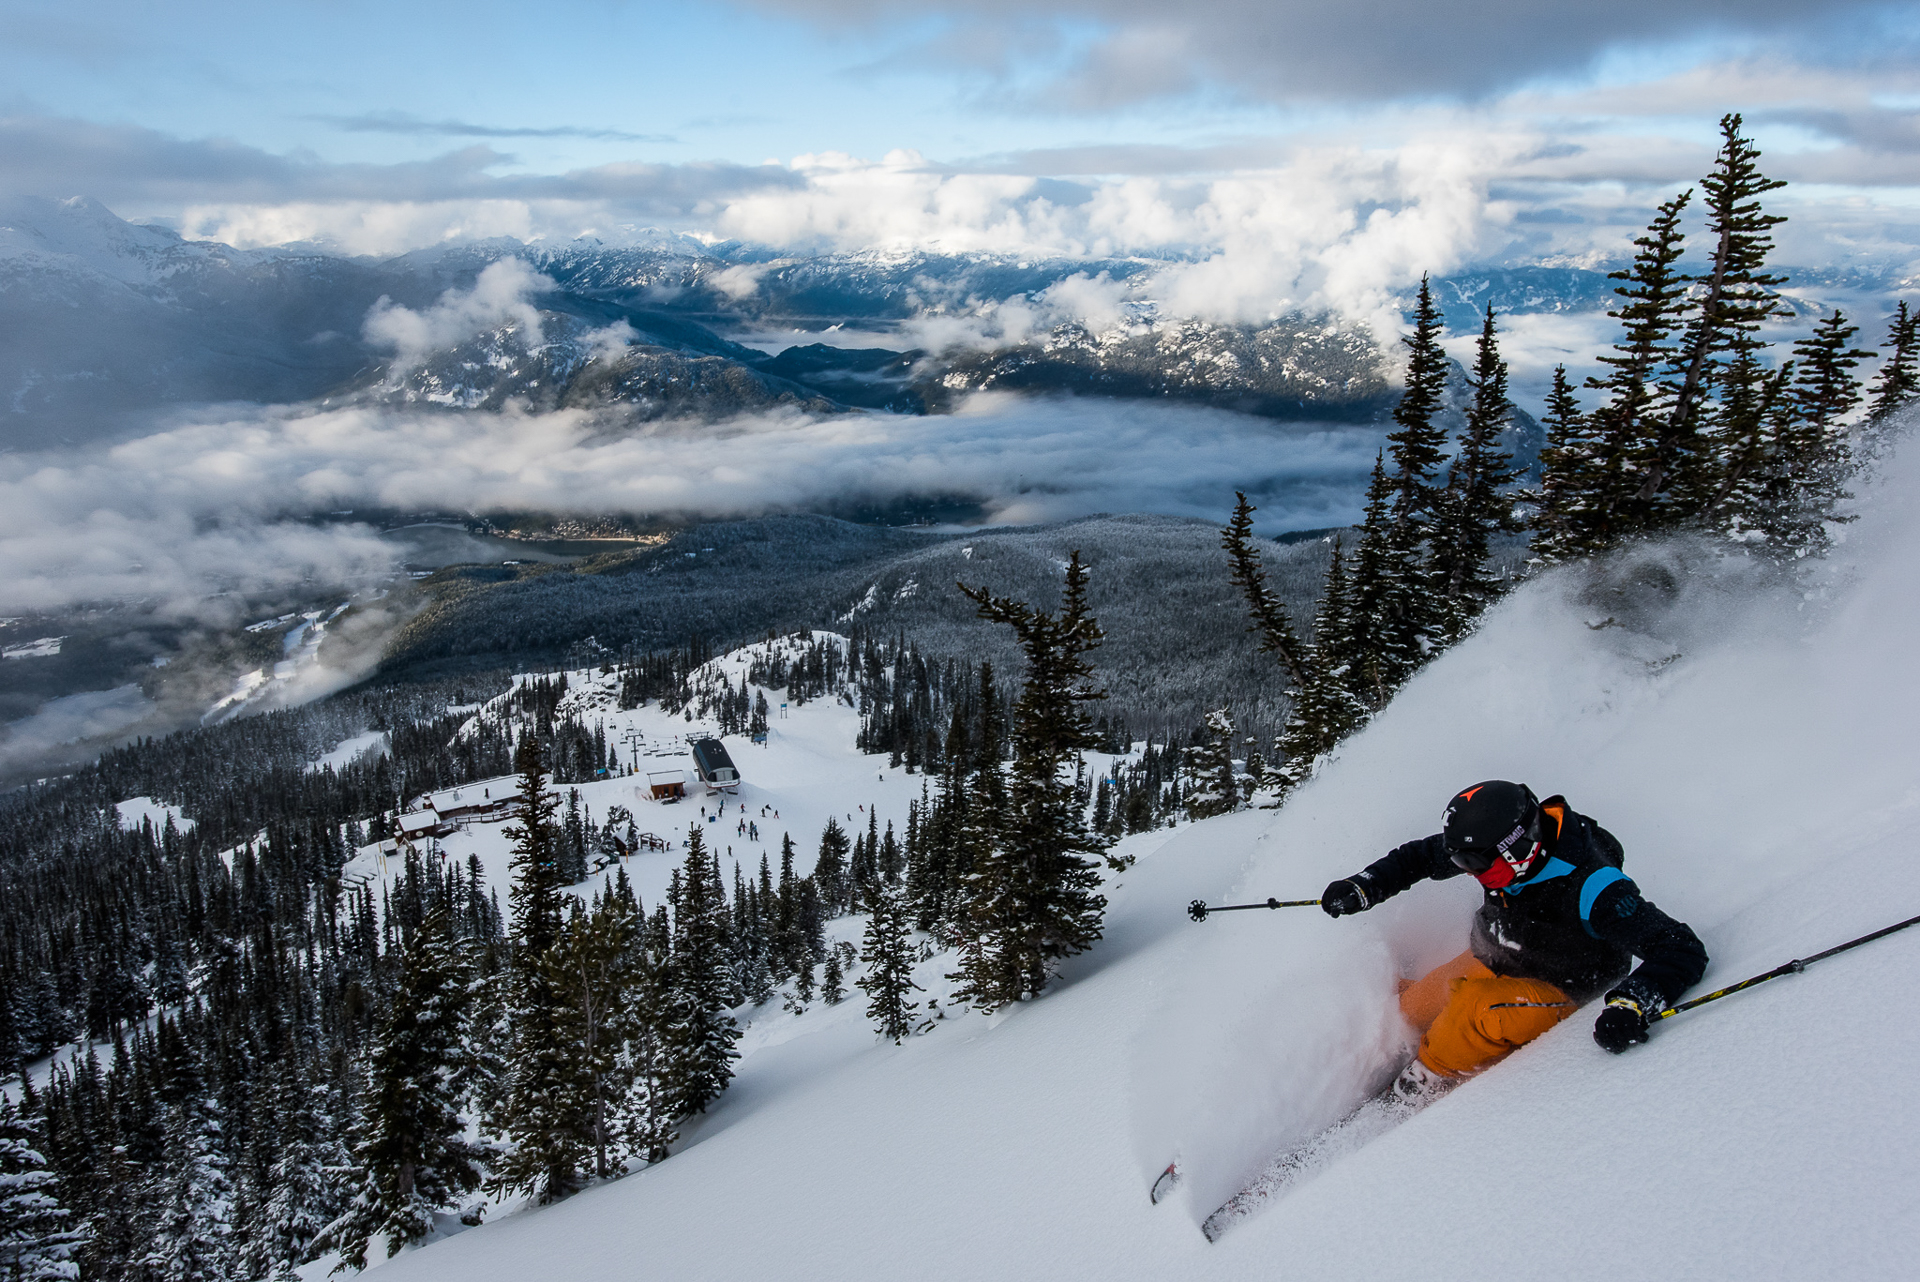 Today's announcement of Vail's most recent purchase is a landmark in Whistler's history. The move is a sign of the times for ski resorts facing pressure to diversify in the face of climate change, but the skiing will stay the same. Or so we hope. PHOTO: Reuben Krabbe